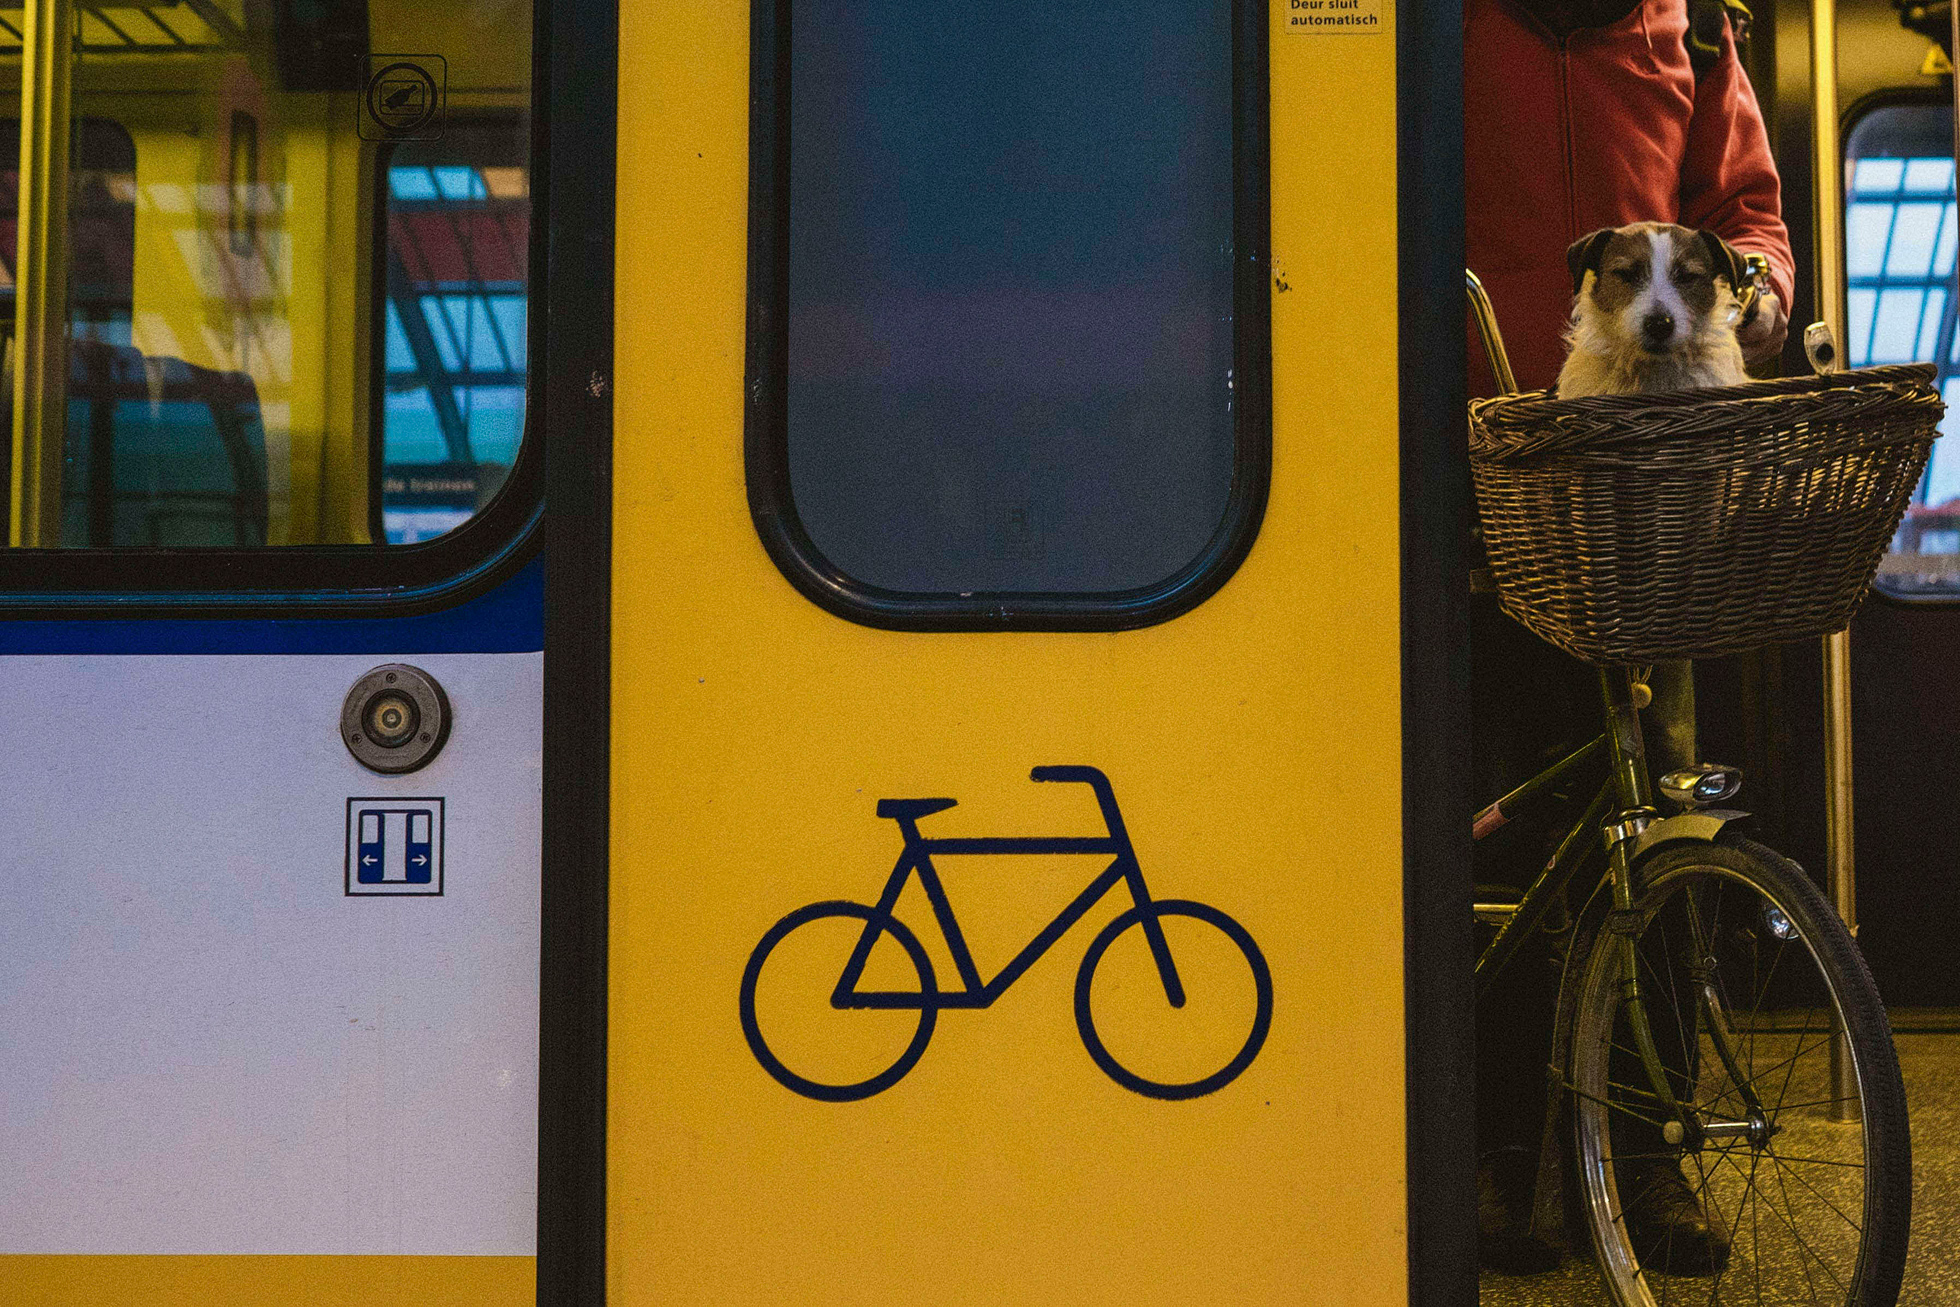 Amsterdam Street Photography with Fuji X-T1